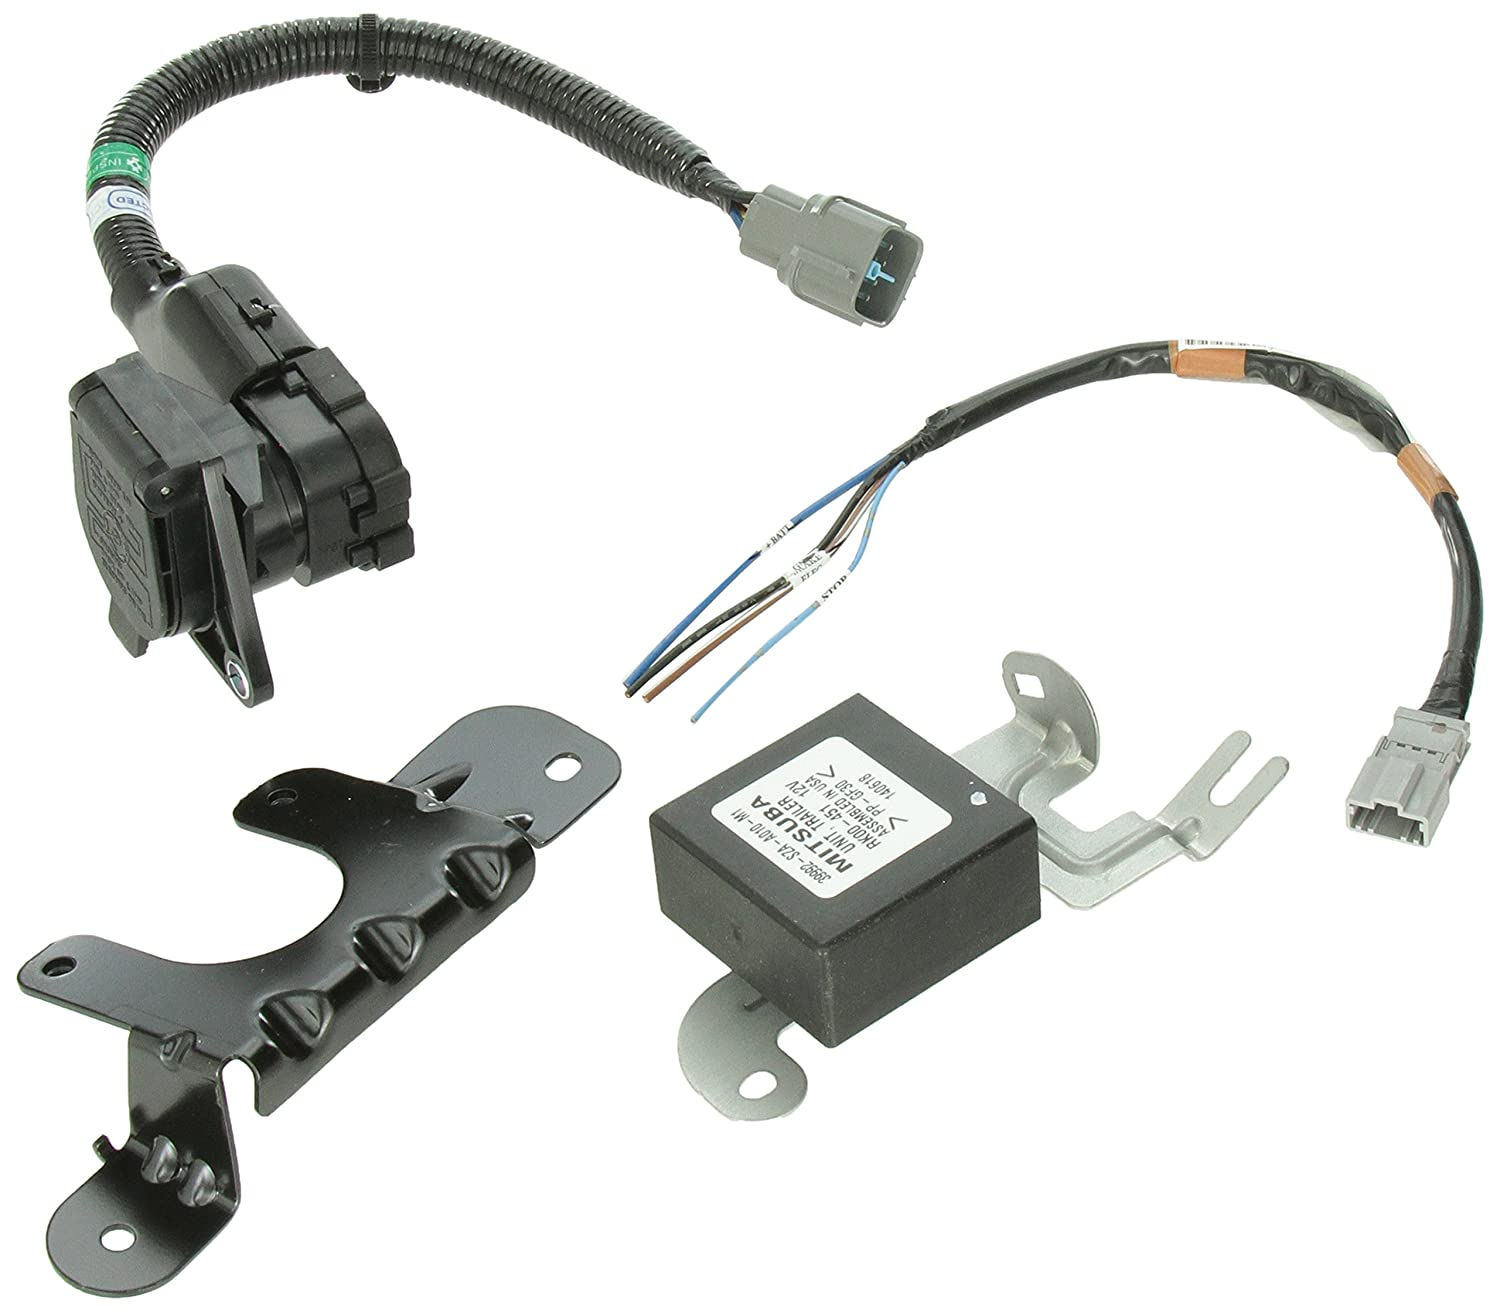 Amazon.com: Genuine Honda 08L91-SZA-100 Trailer Hitch Harness: Automotive